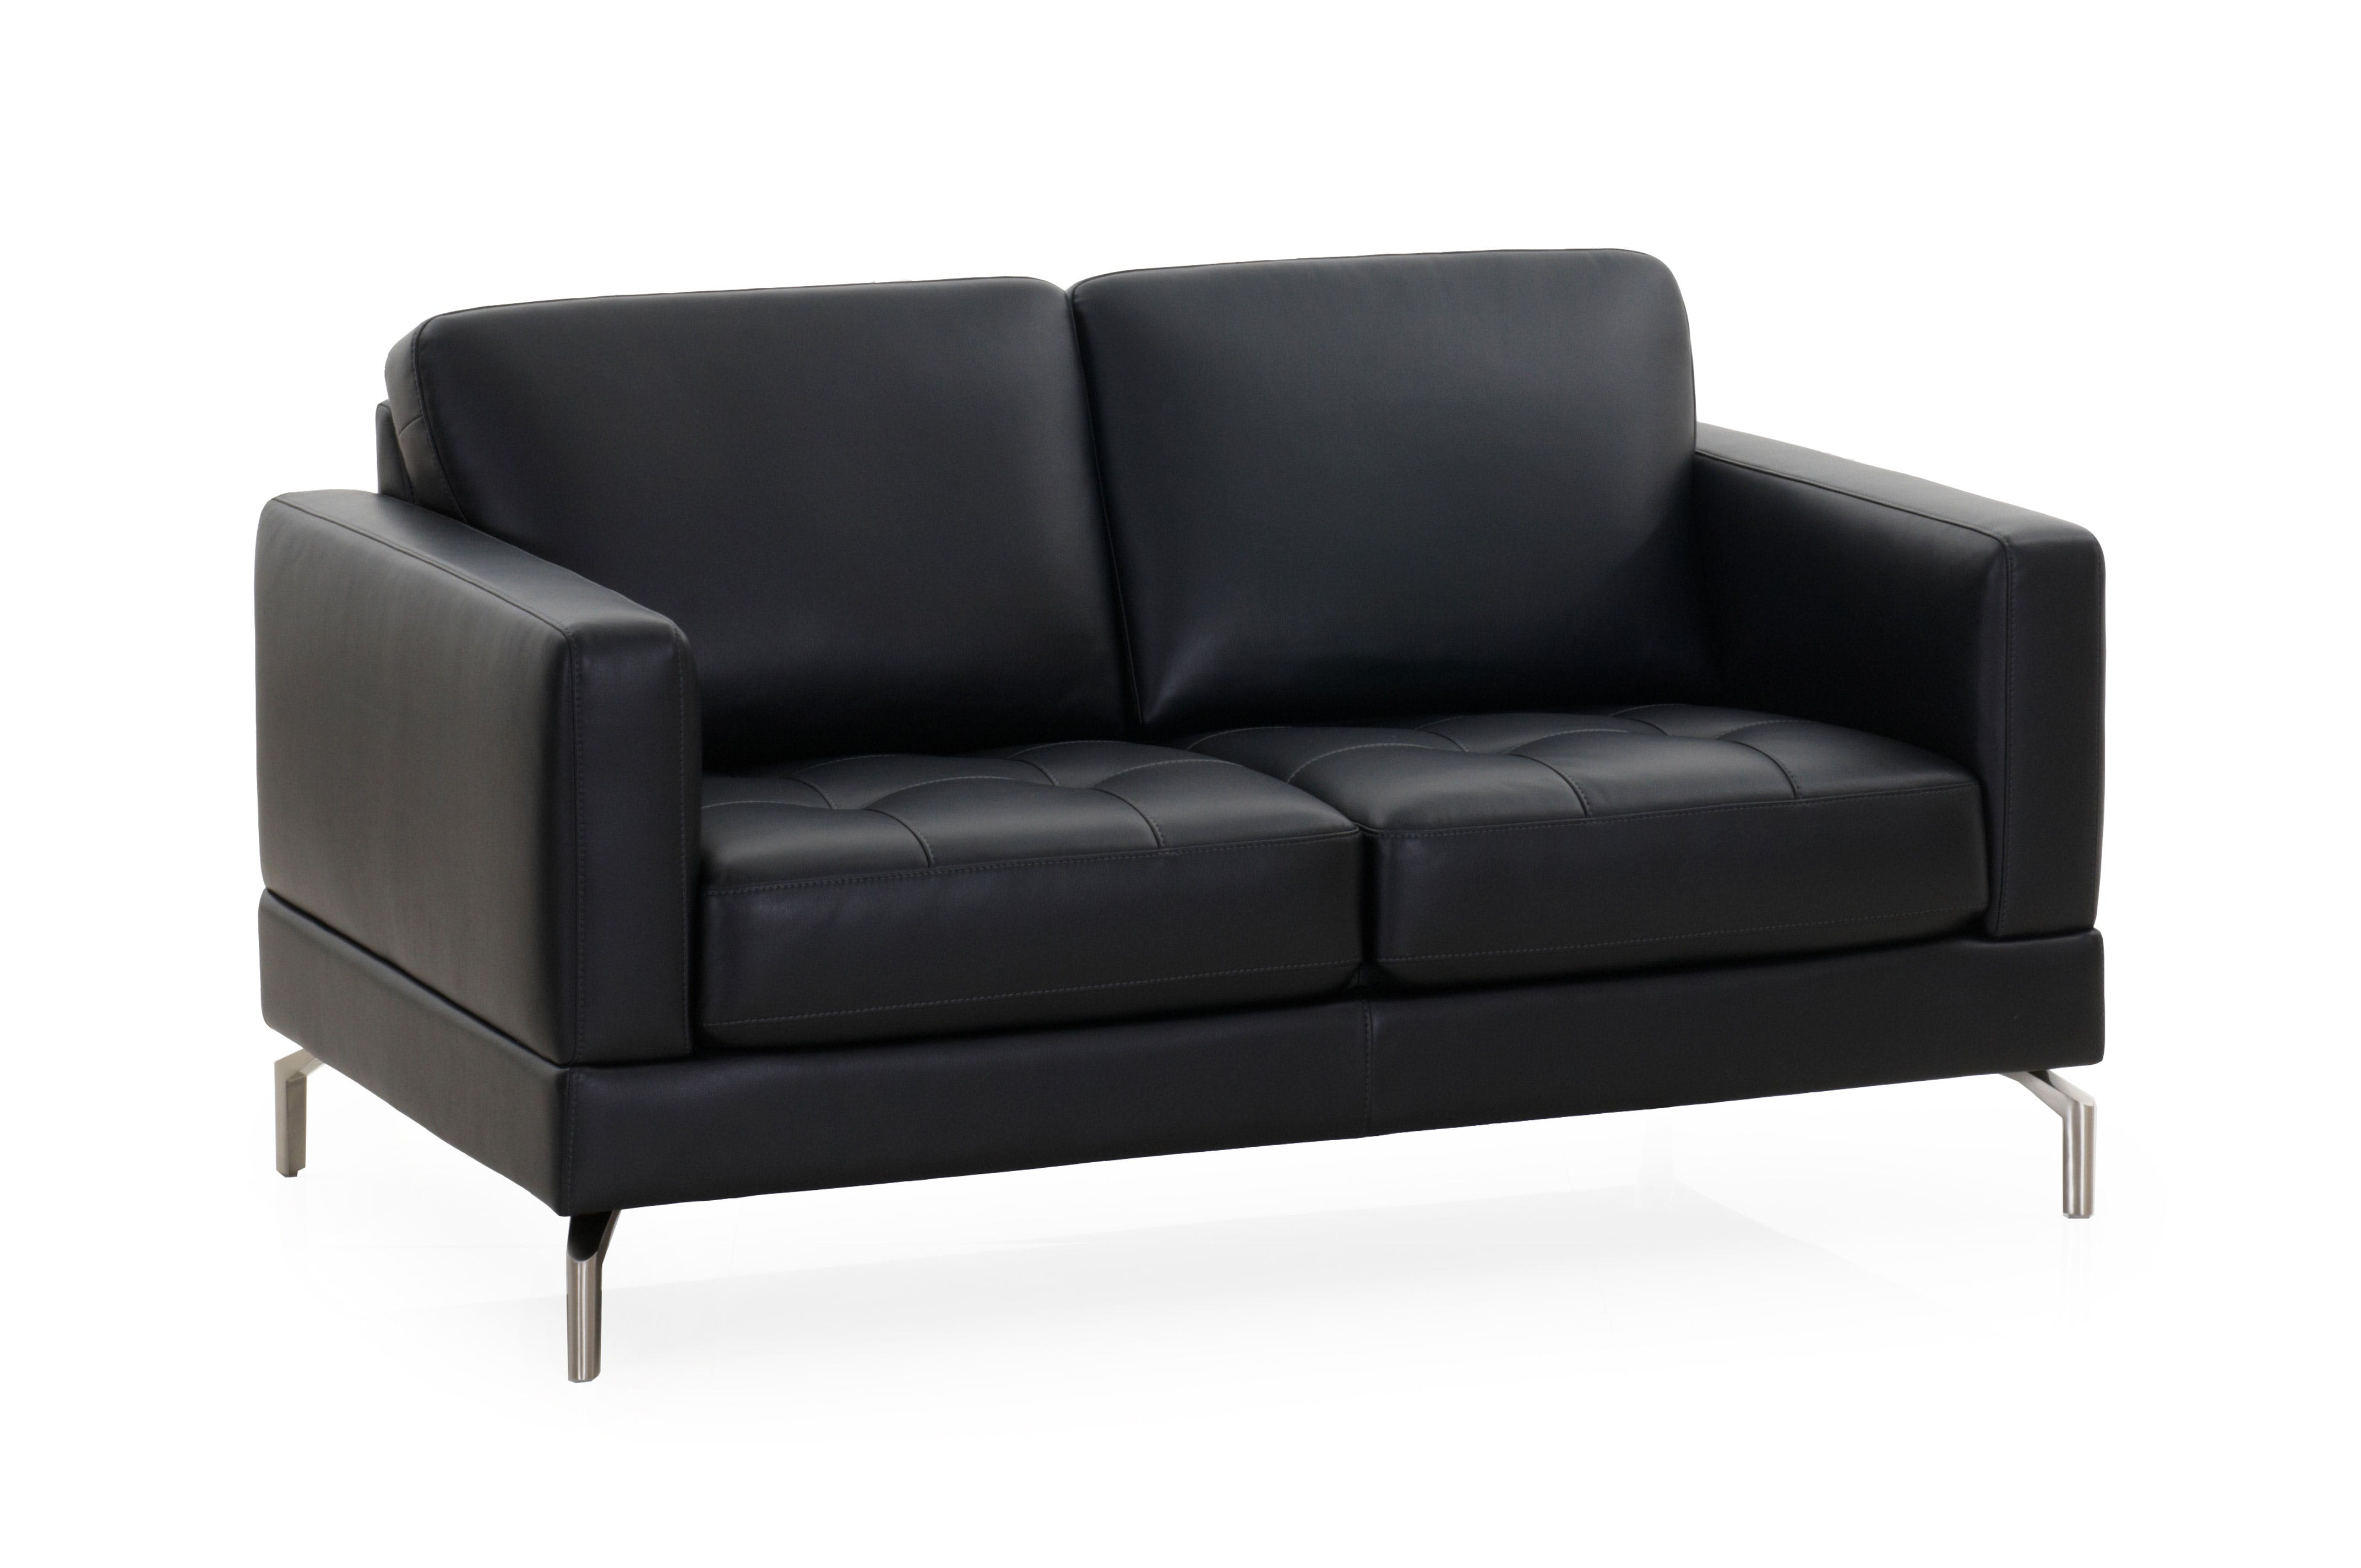 spencer  seater fabric sofa  harvey norman new zealand - spencer  seater fabric sofa